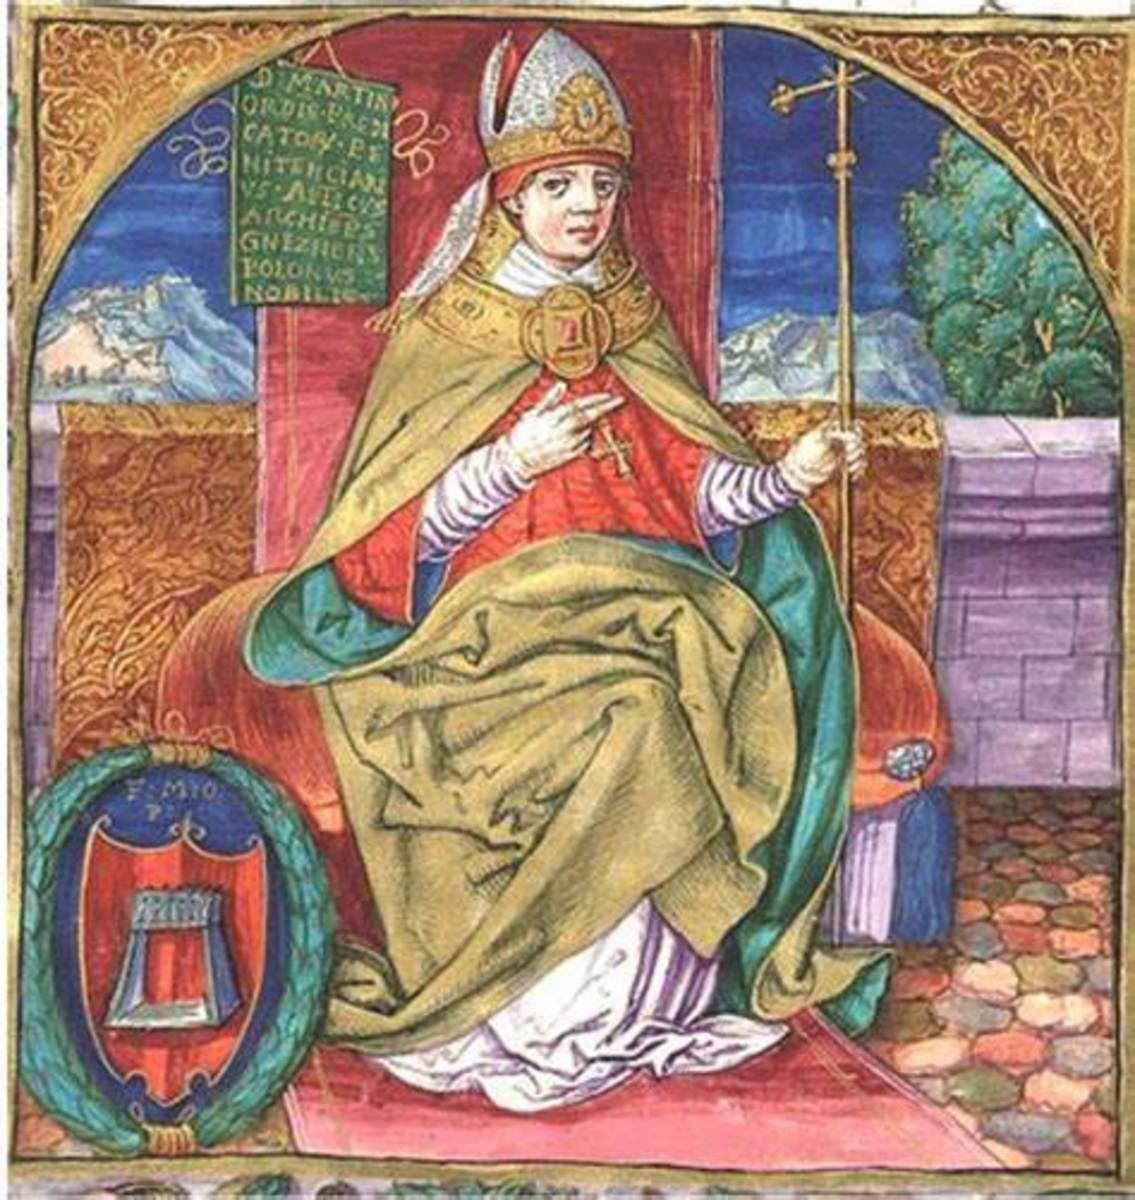 Pictured above is an artist's portrayal of Pope Joan.